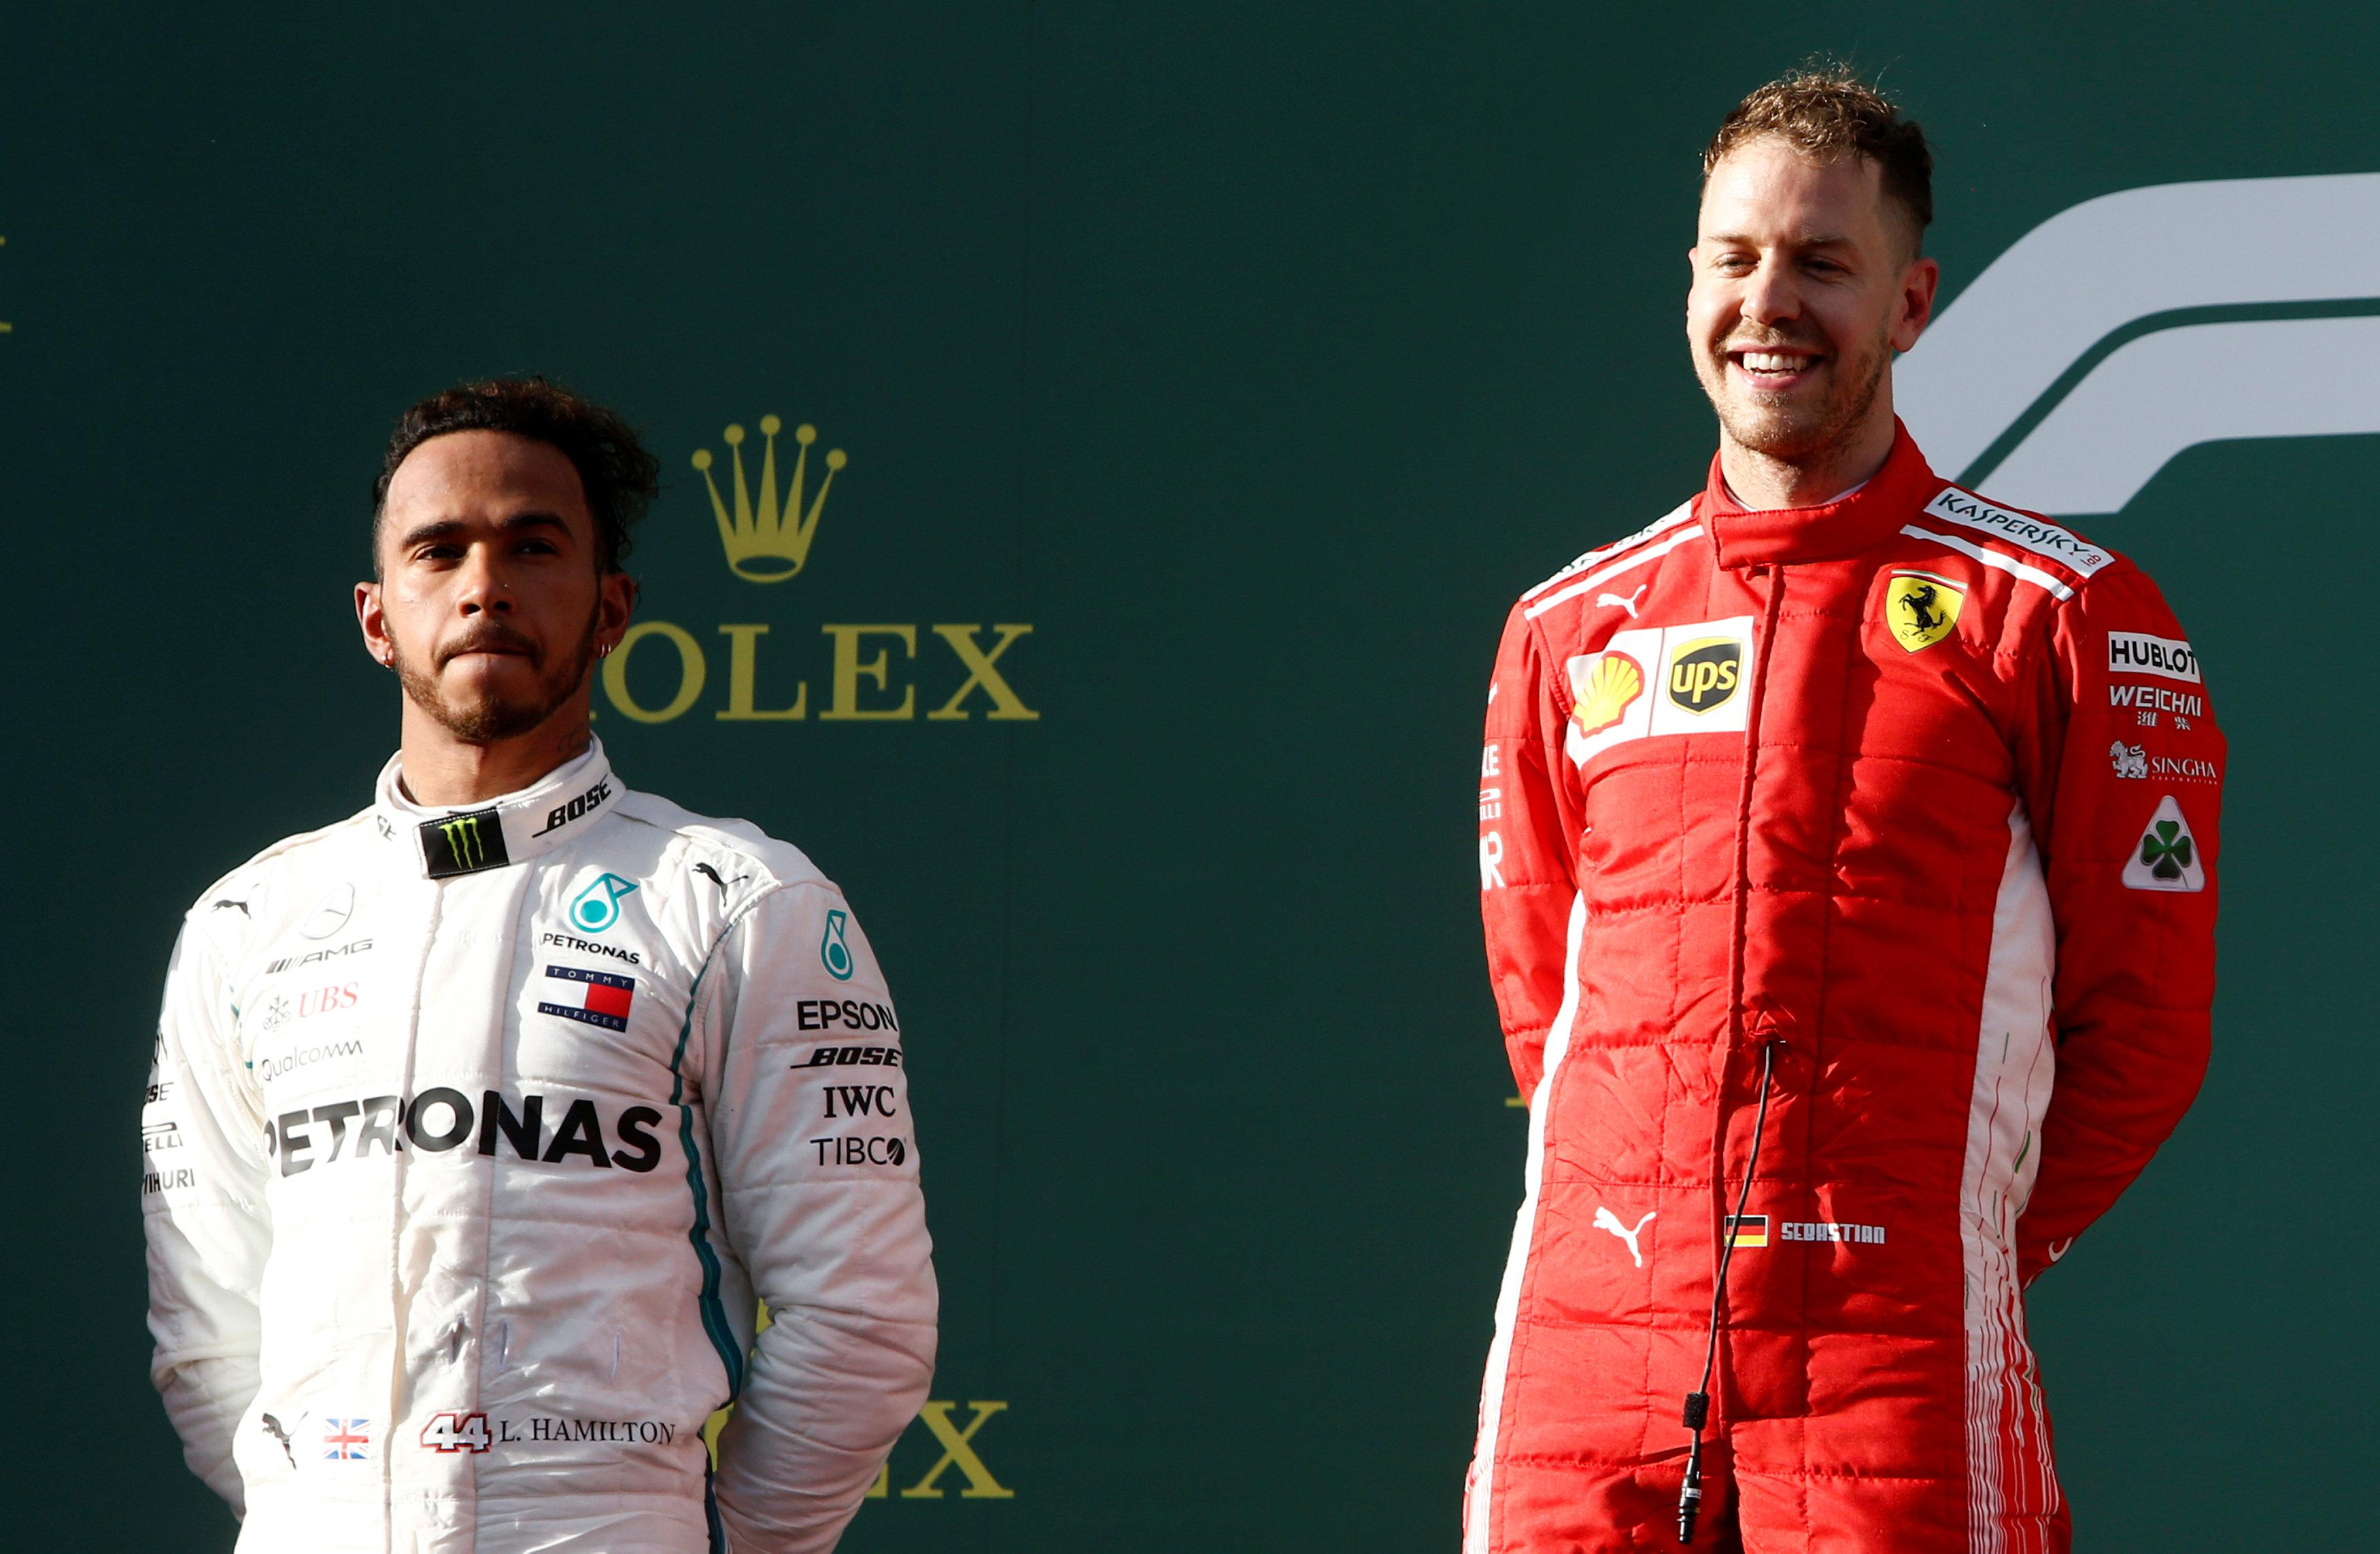 Lewis Hamilton looked to have the race in the bag before a Mercedes blunder allowed Sebastian Vettel to win